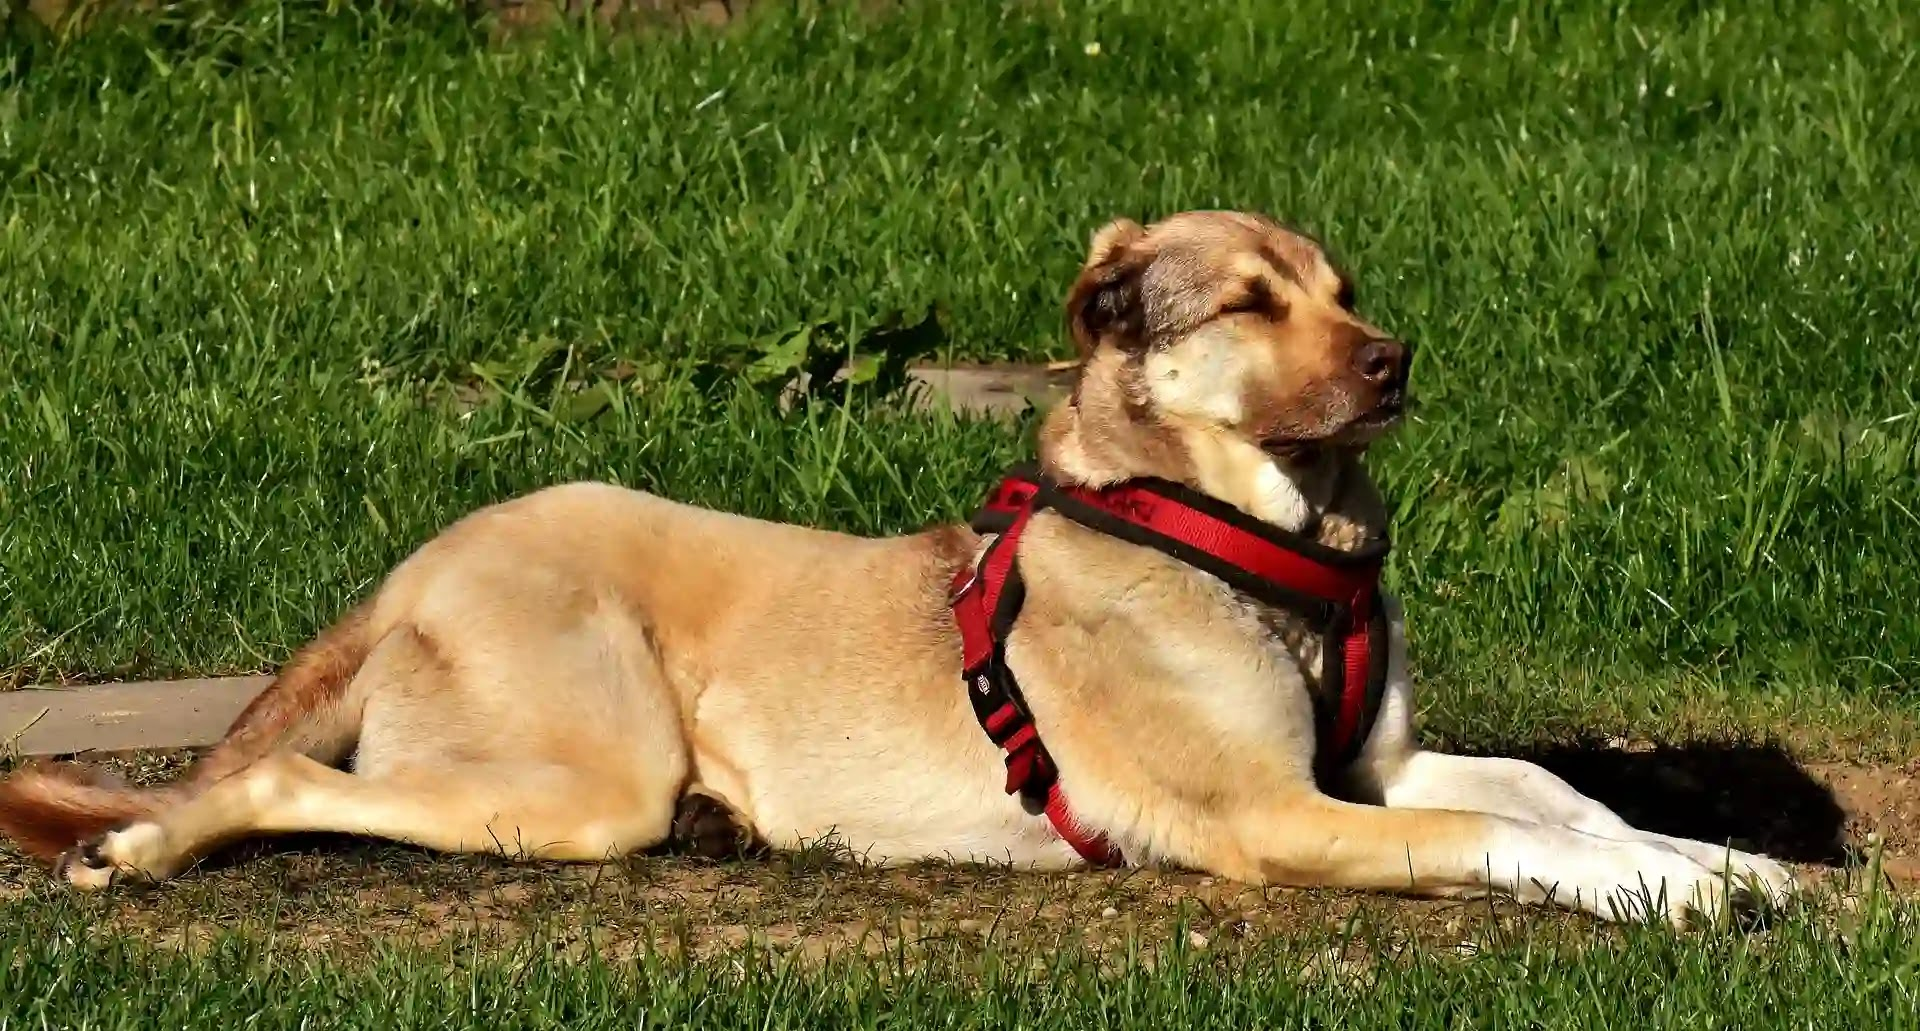 What are the best dog obedience training methods?